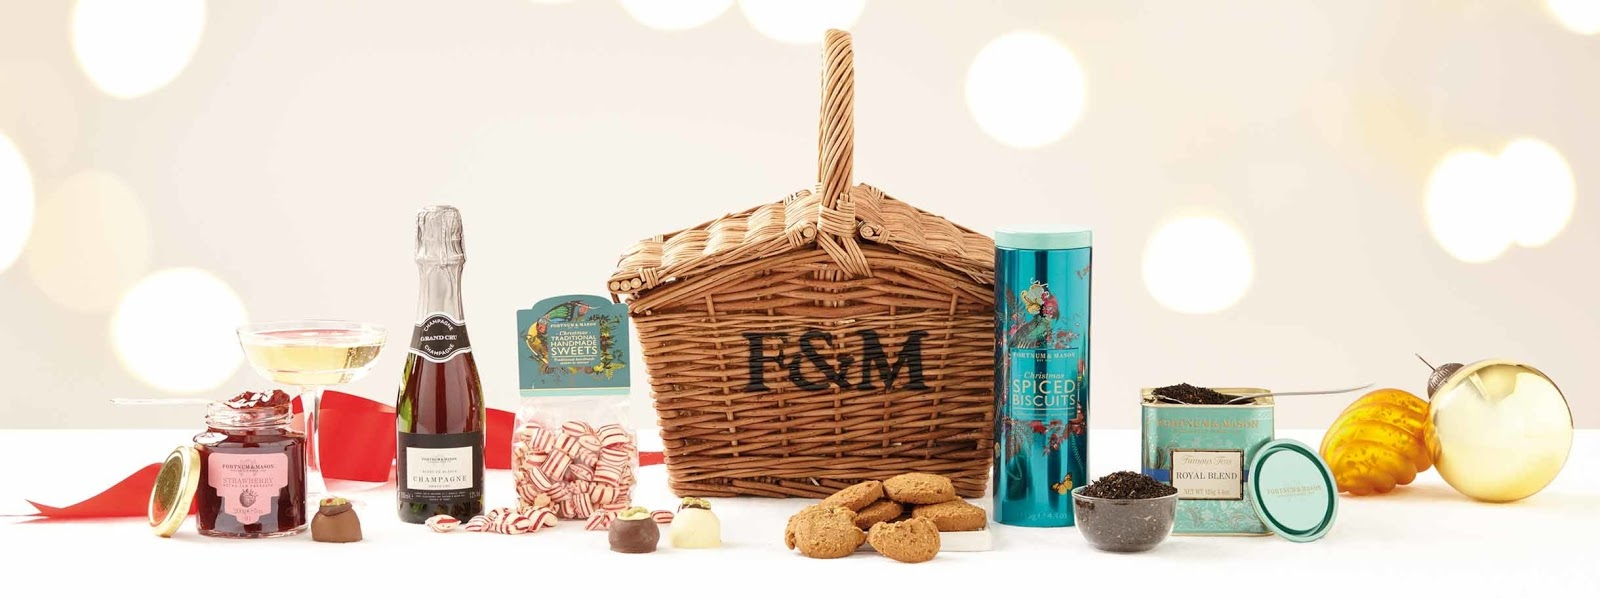 A Luxury Gift Guide and gift ideas for Couples - Fortnum and Mason Christmas hamper